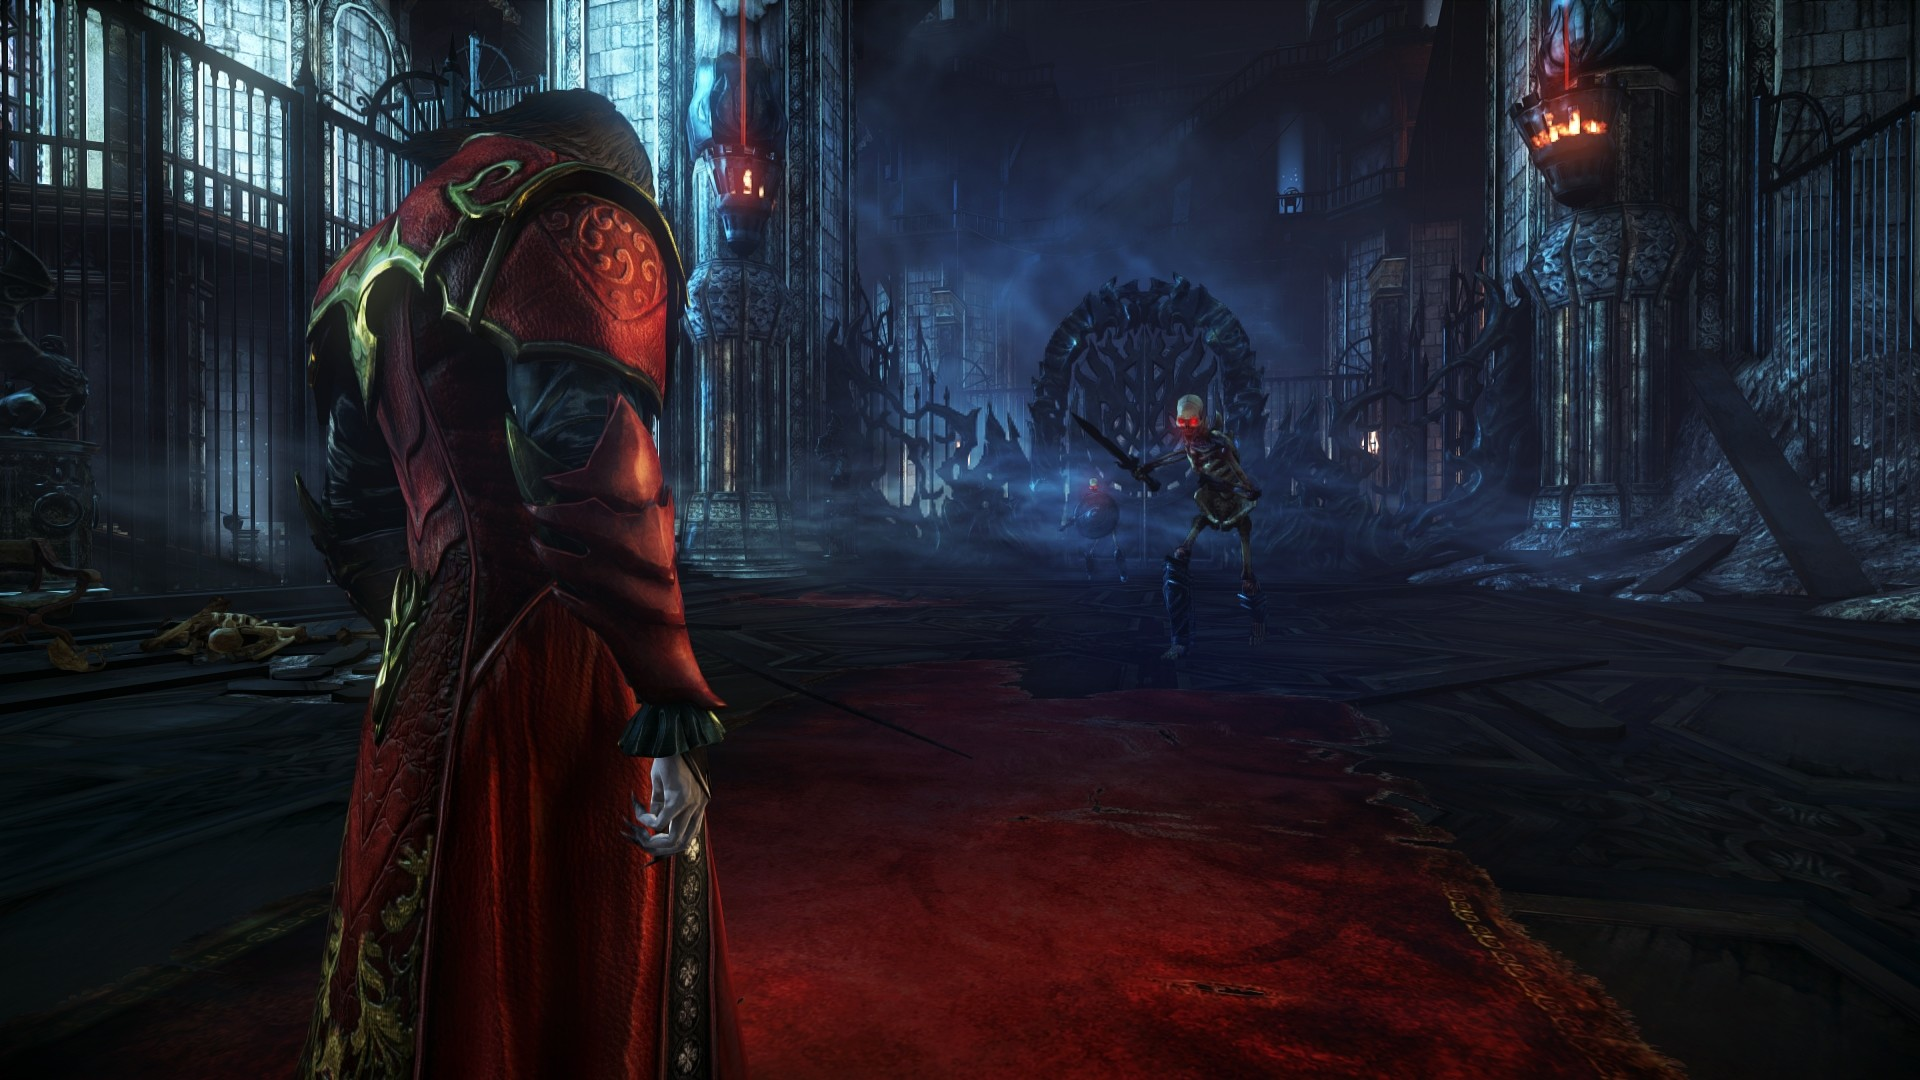 Res: 1920x1080, Castlevania: Lords Of Shadow 2 HD Wallpaper HD 32 - 1920 X 1080